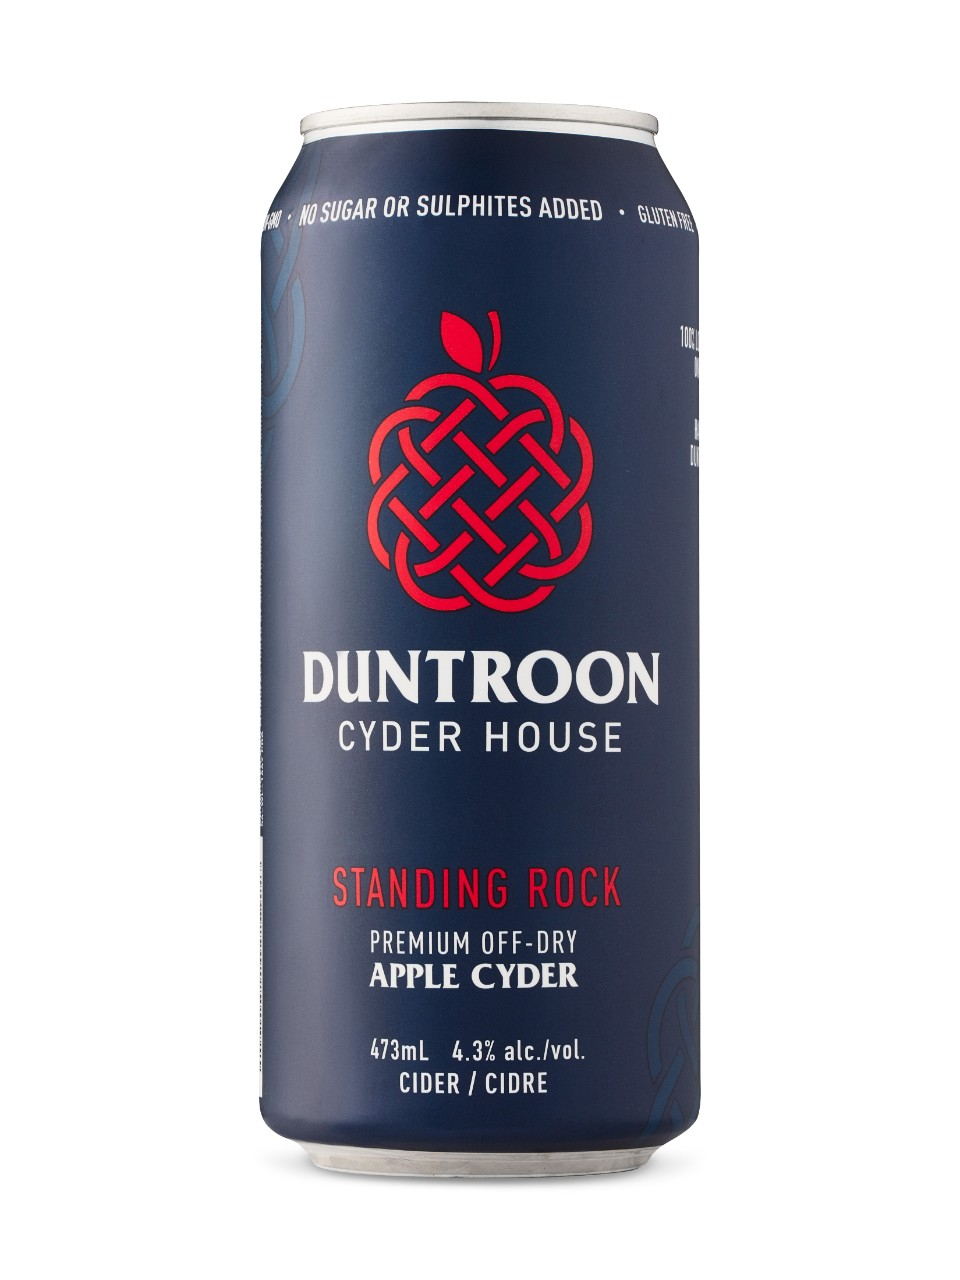 Duntroon Cyder House Standing Rock